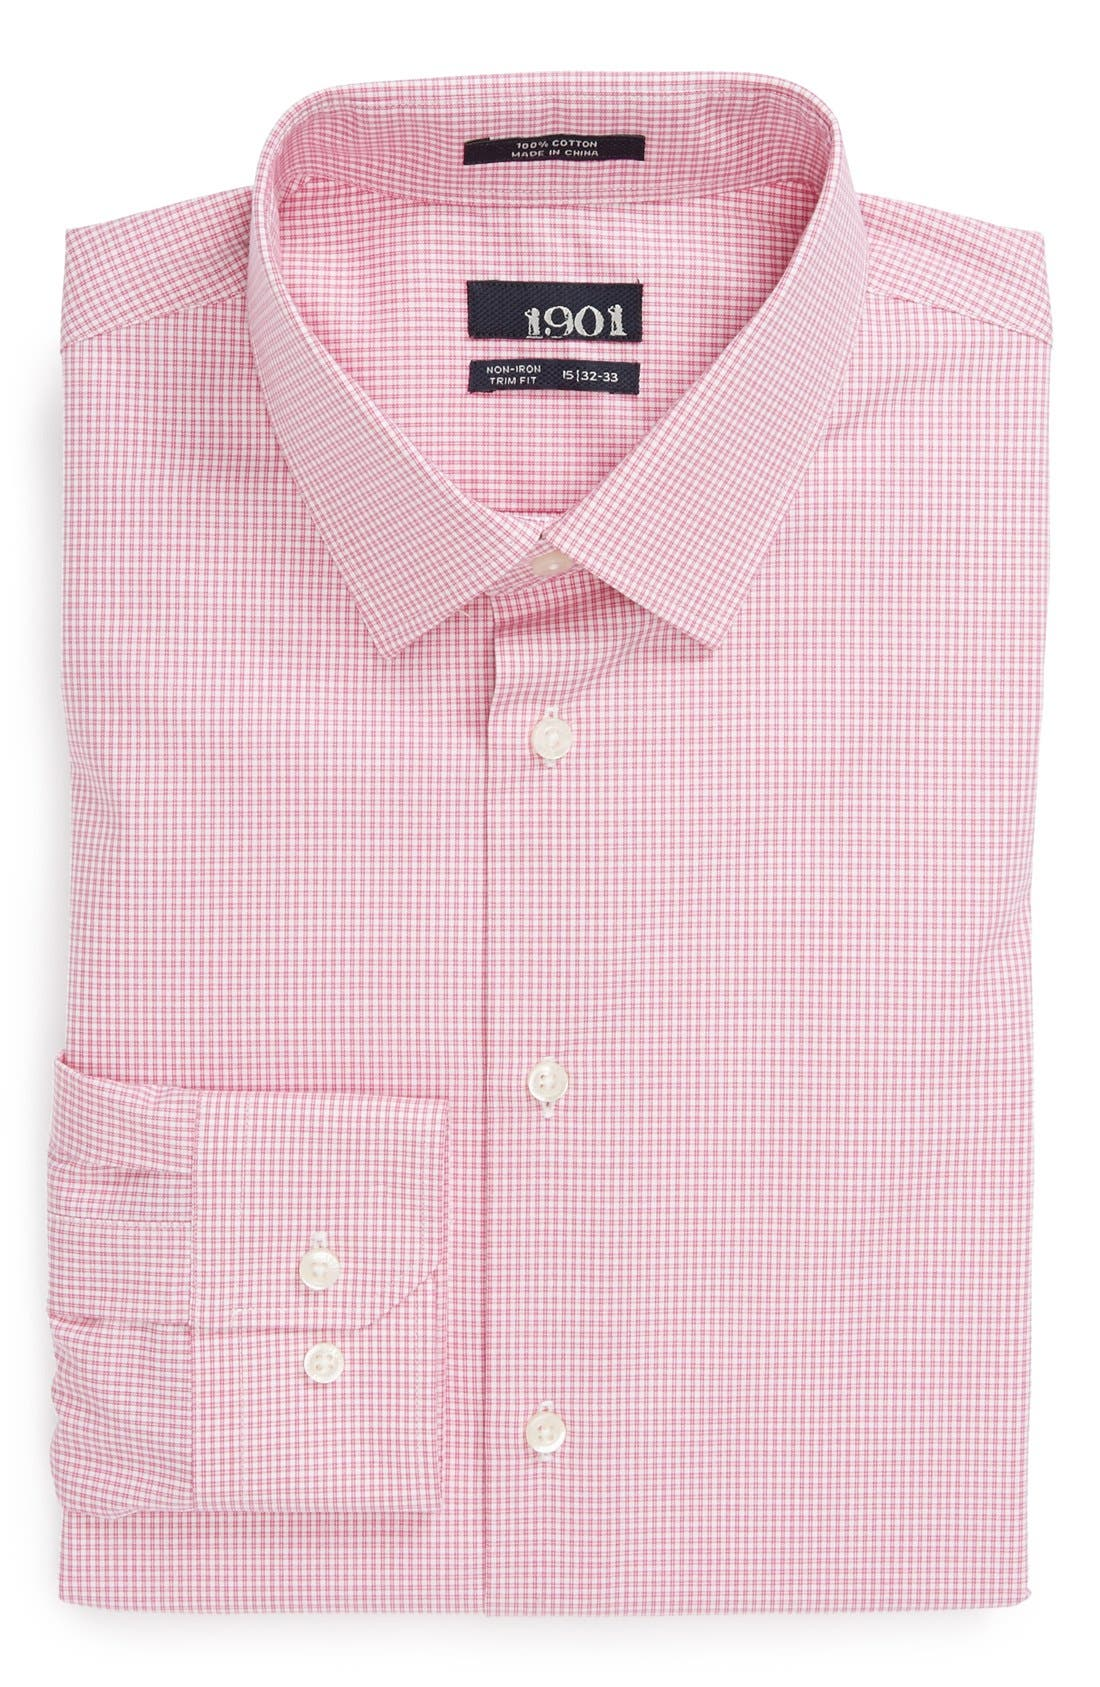 Alternate Image 1 Selected - 1901 Trim Fit Non-Iron Check Dress Shirt